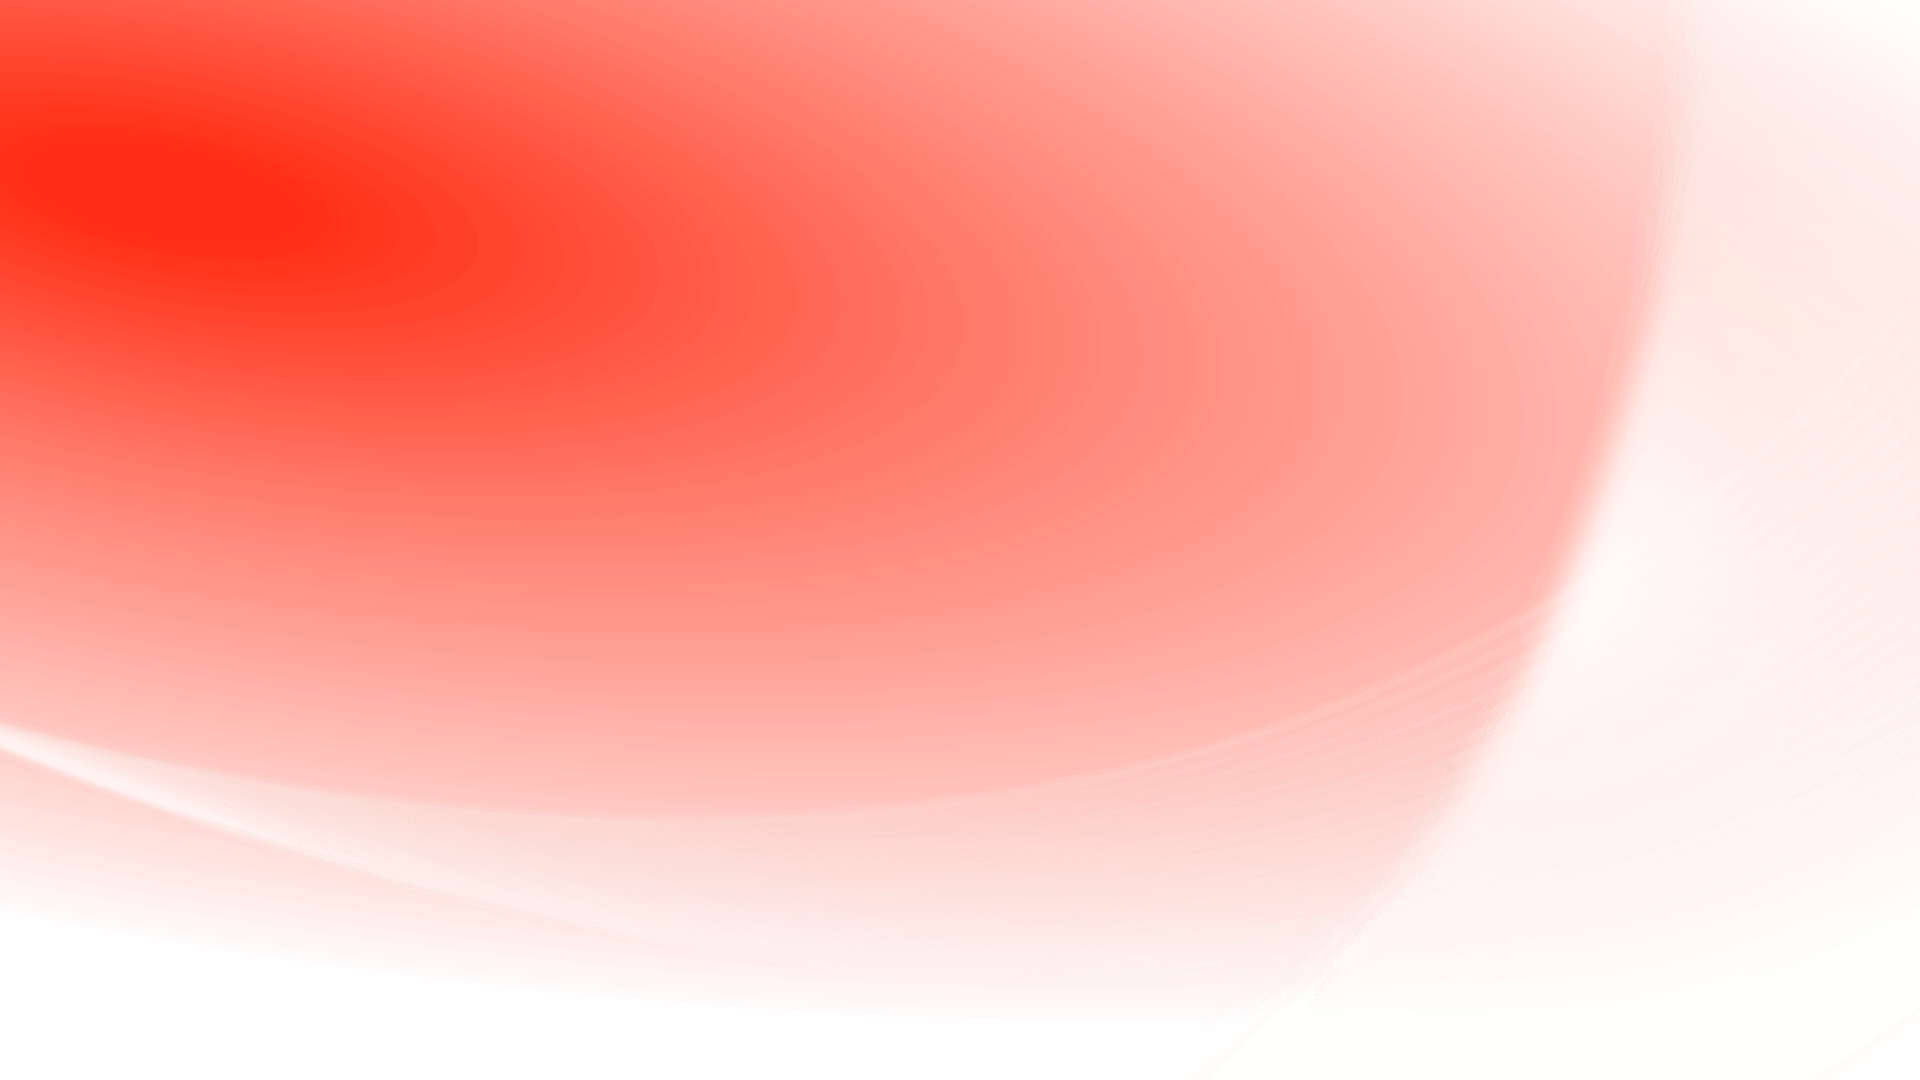 Set this reddish transparent waves image as CSS background